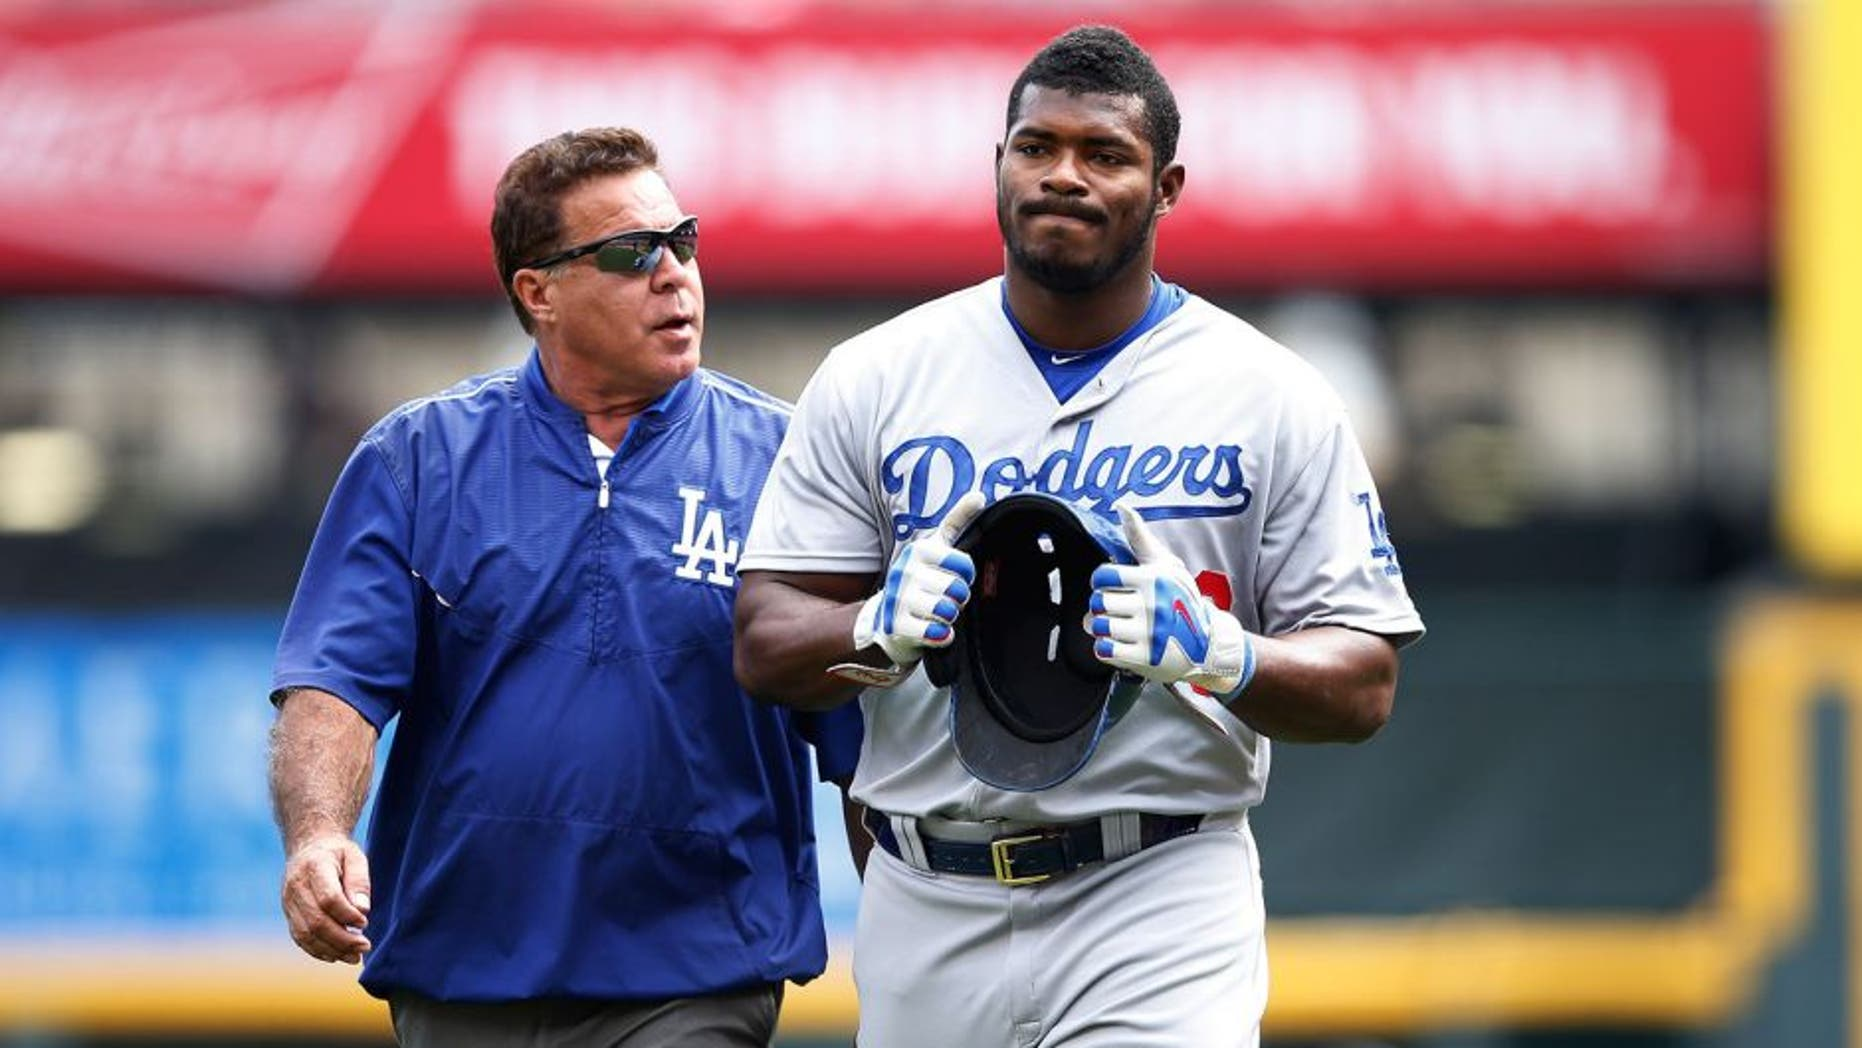 CINCINNATI, OH - AUGUST 27: Yasiel Puig #66 of the Los Angeles Dodgers leaves the field after suffering an injury beating out a throw to first base in the ninth inning against the Cincinnati Reds at Great American Ball Park on August 27, 2015 in Cincinnati, Ohio. The Dodgers defeated the Reds 1-0. (Photo by Joe Robbins/Getty Images)